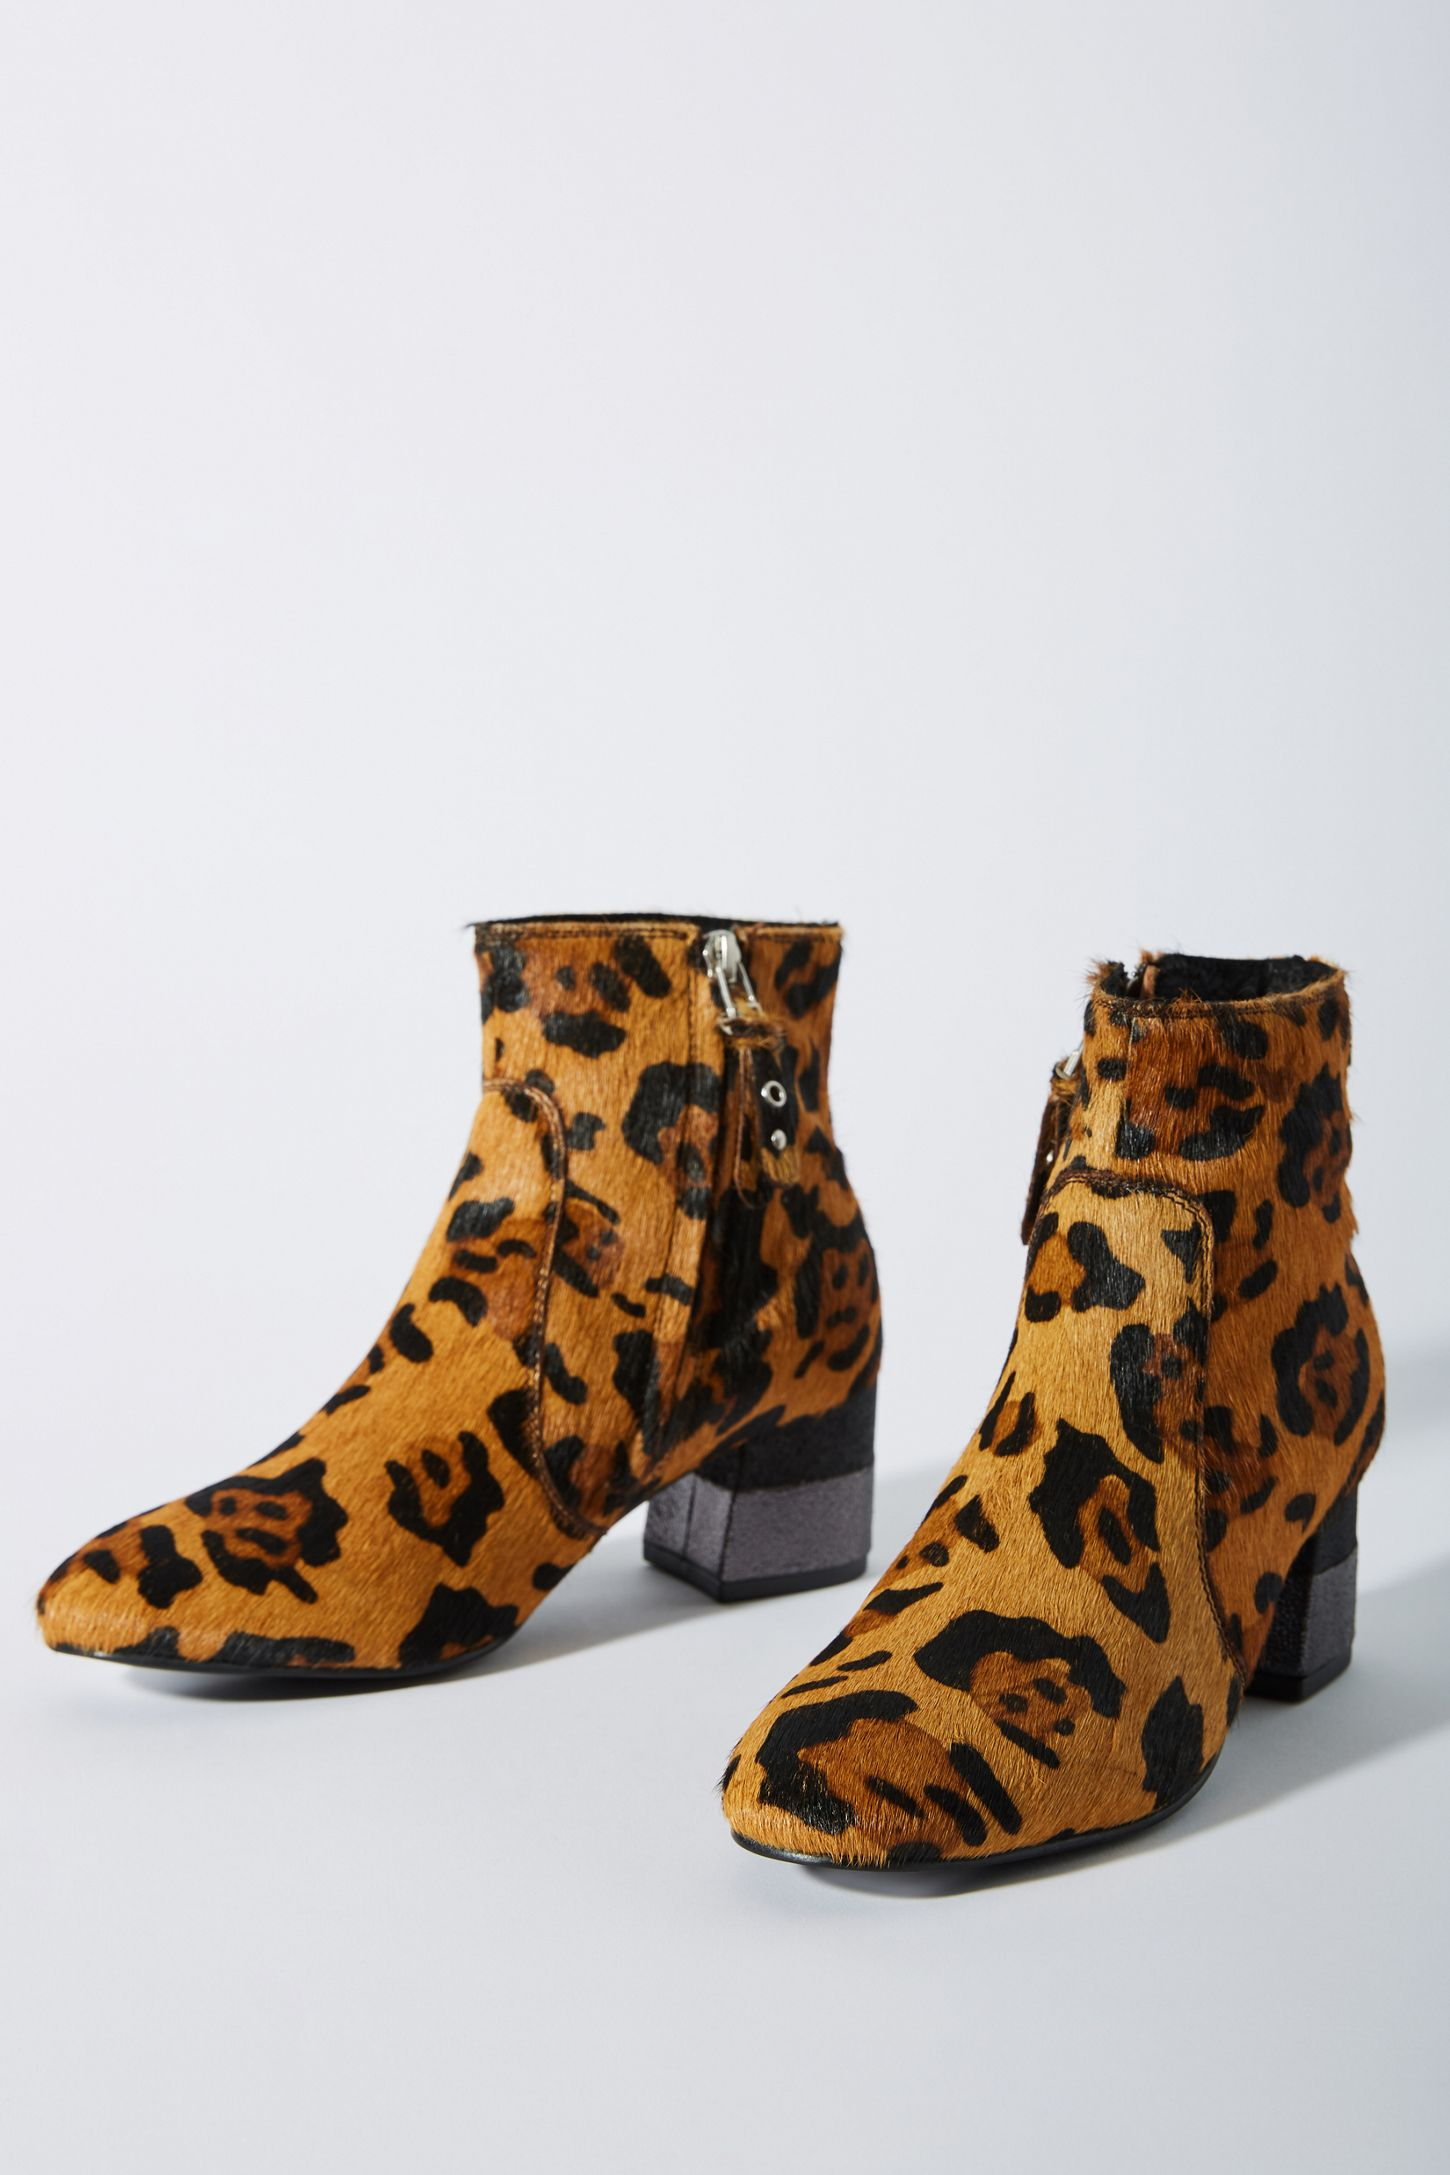 734256e68ce Gioseppo Leopard Booties | Anthropologie